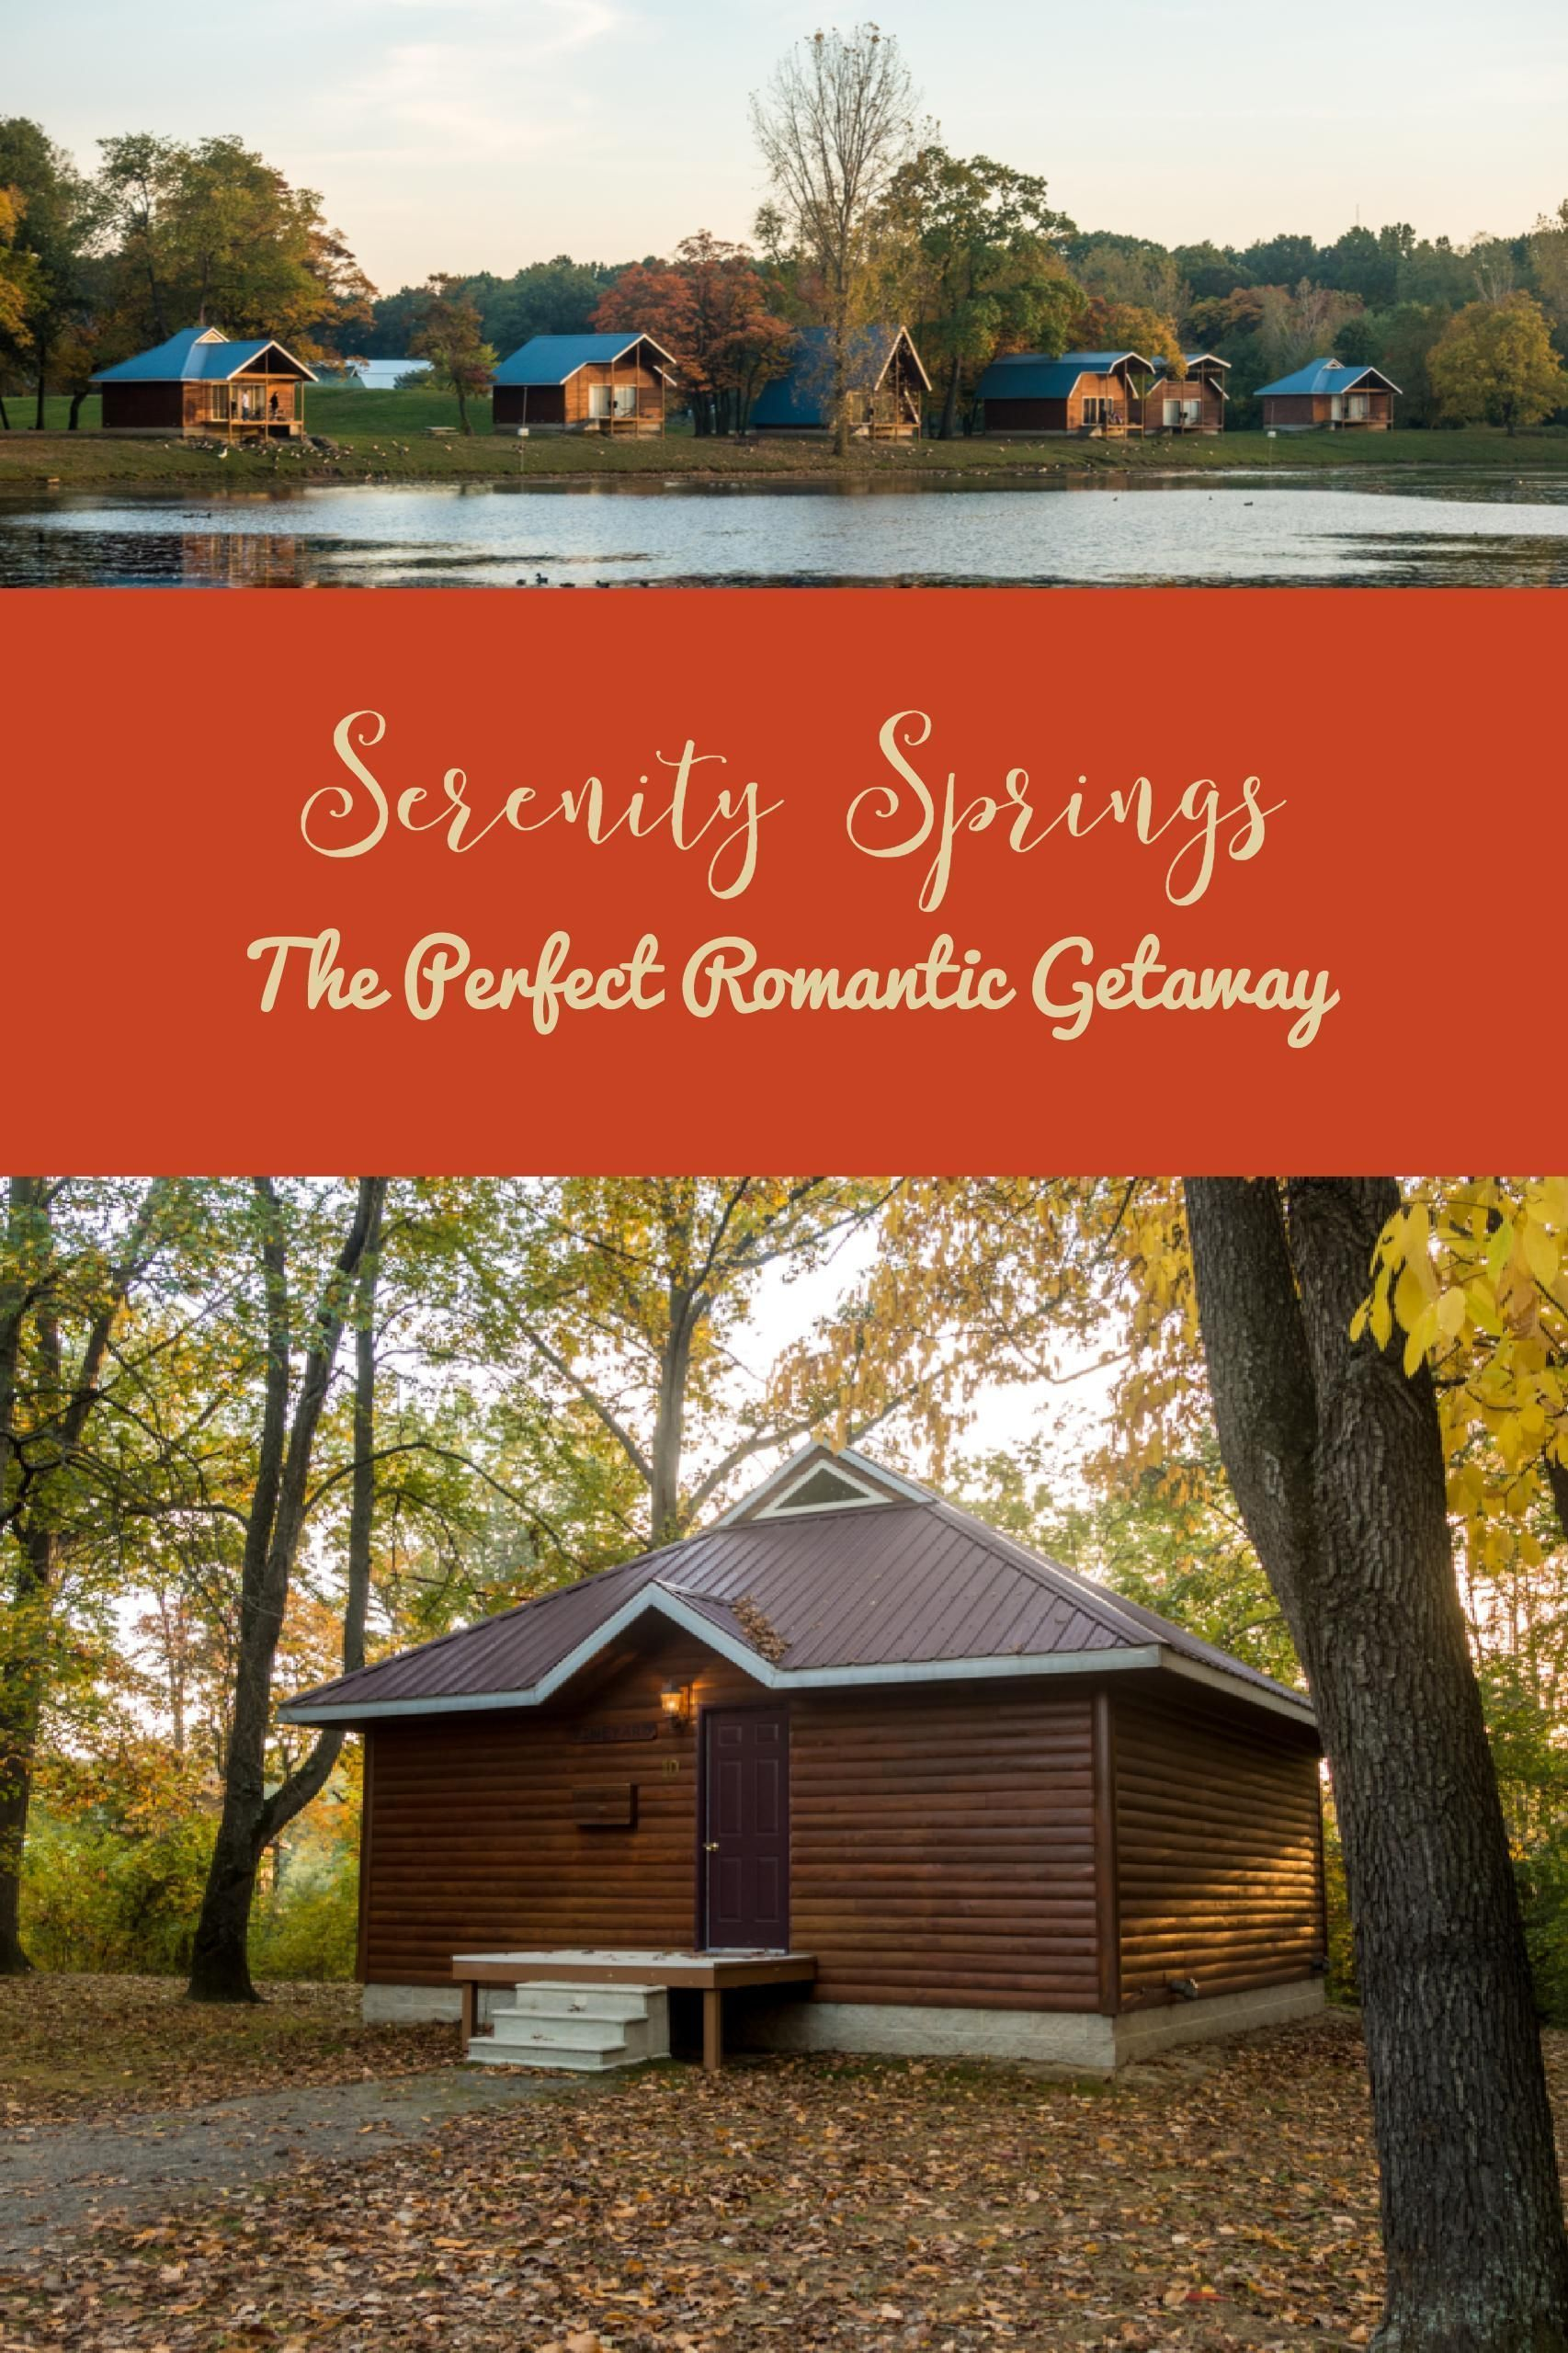 Serenity Springs The Perfect Romantic Getaway For Celebrating An